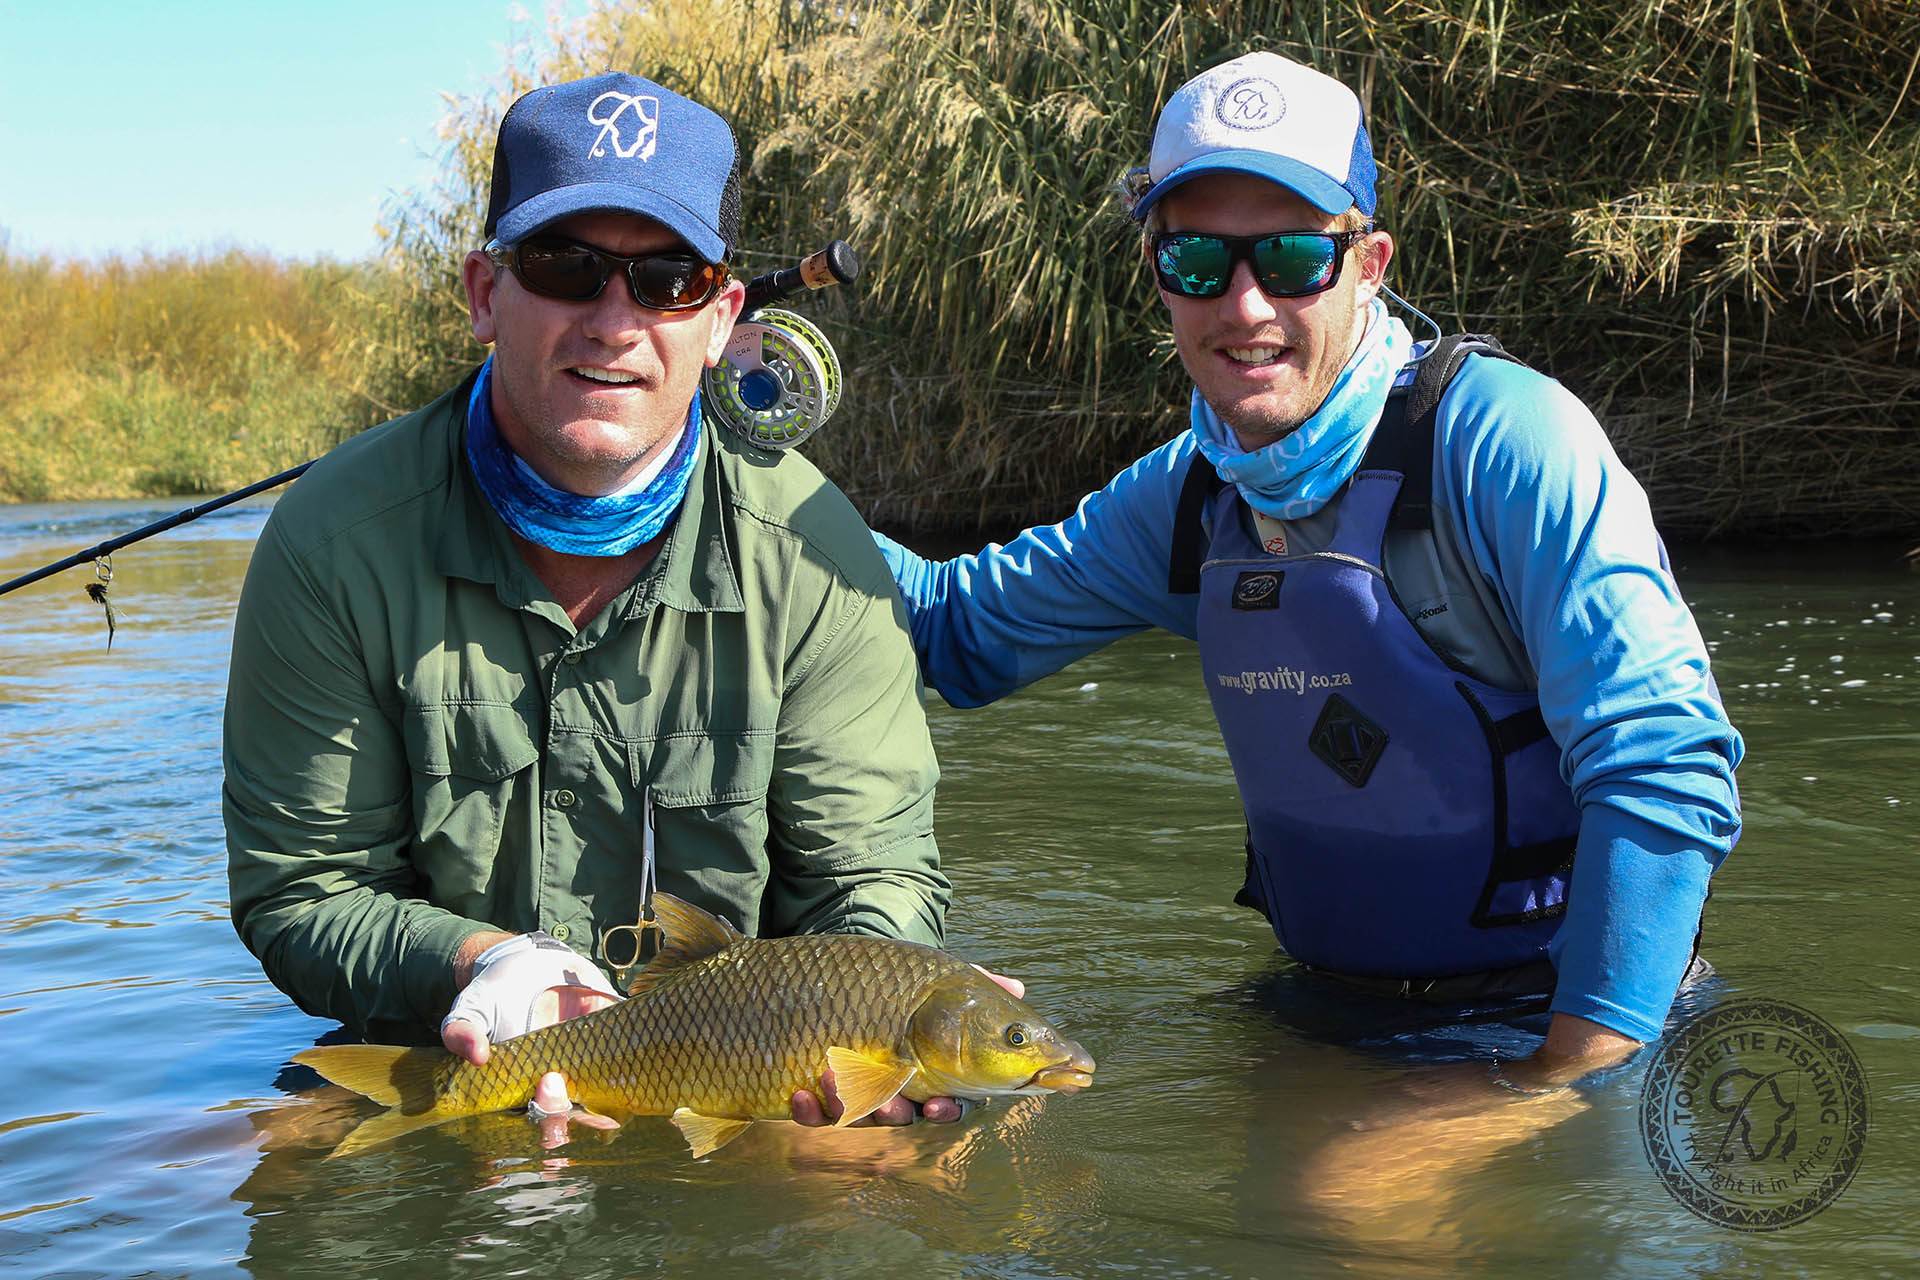 kalahari-largemouth-yellowfish-season-2019-group-1-african-waters-cast-connect-conserve-fishing-blog-sight-fished-smallie